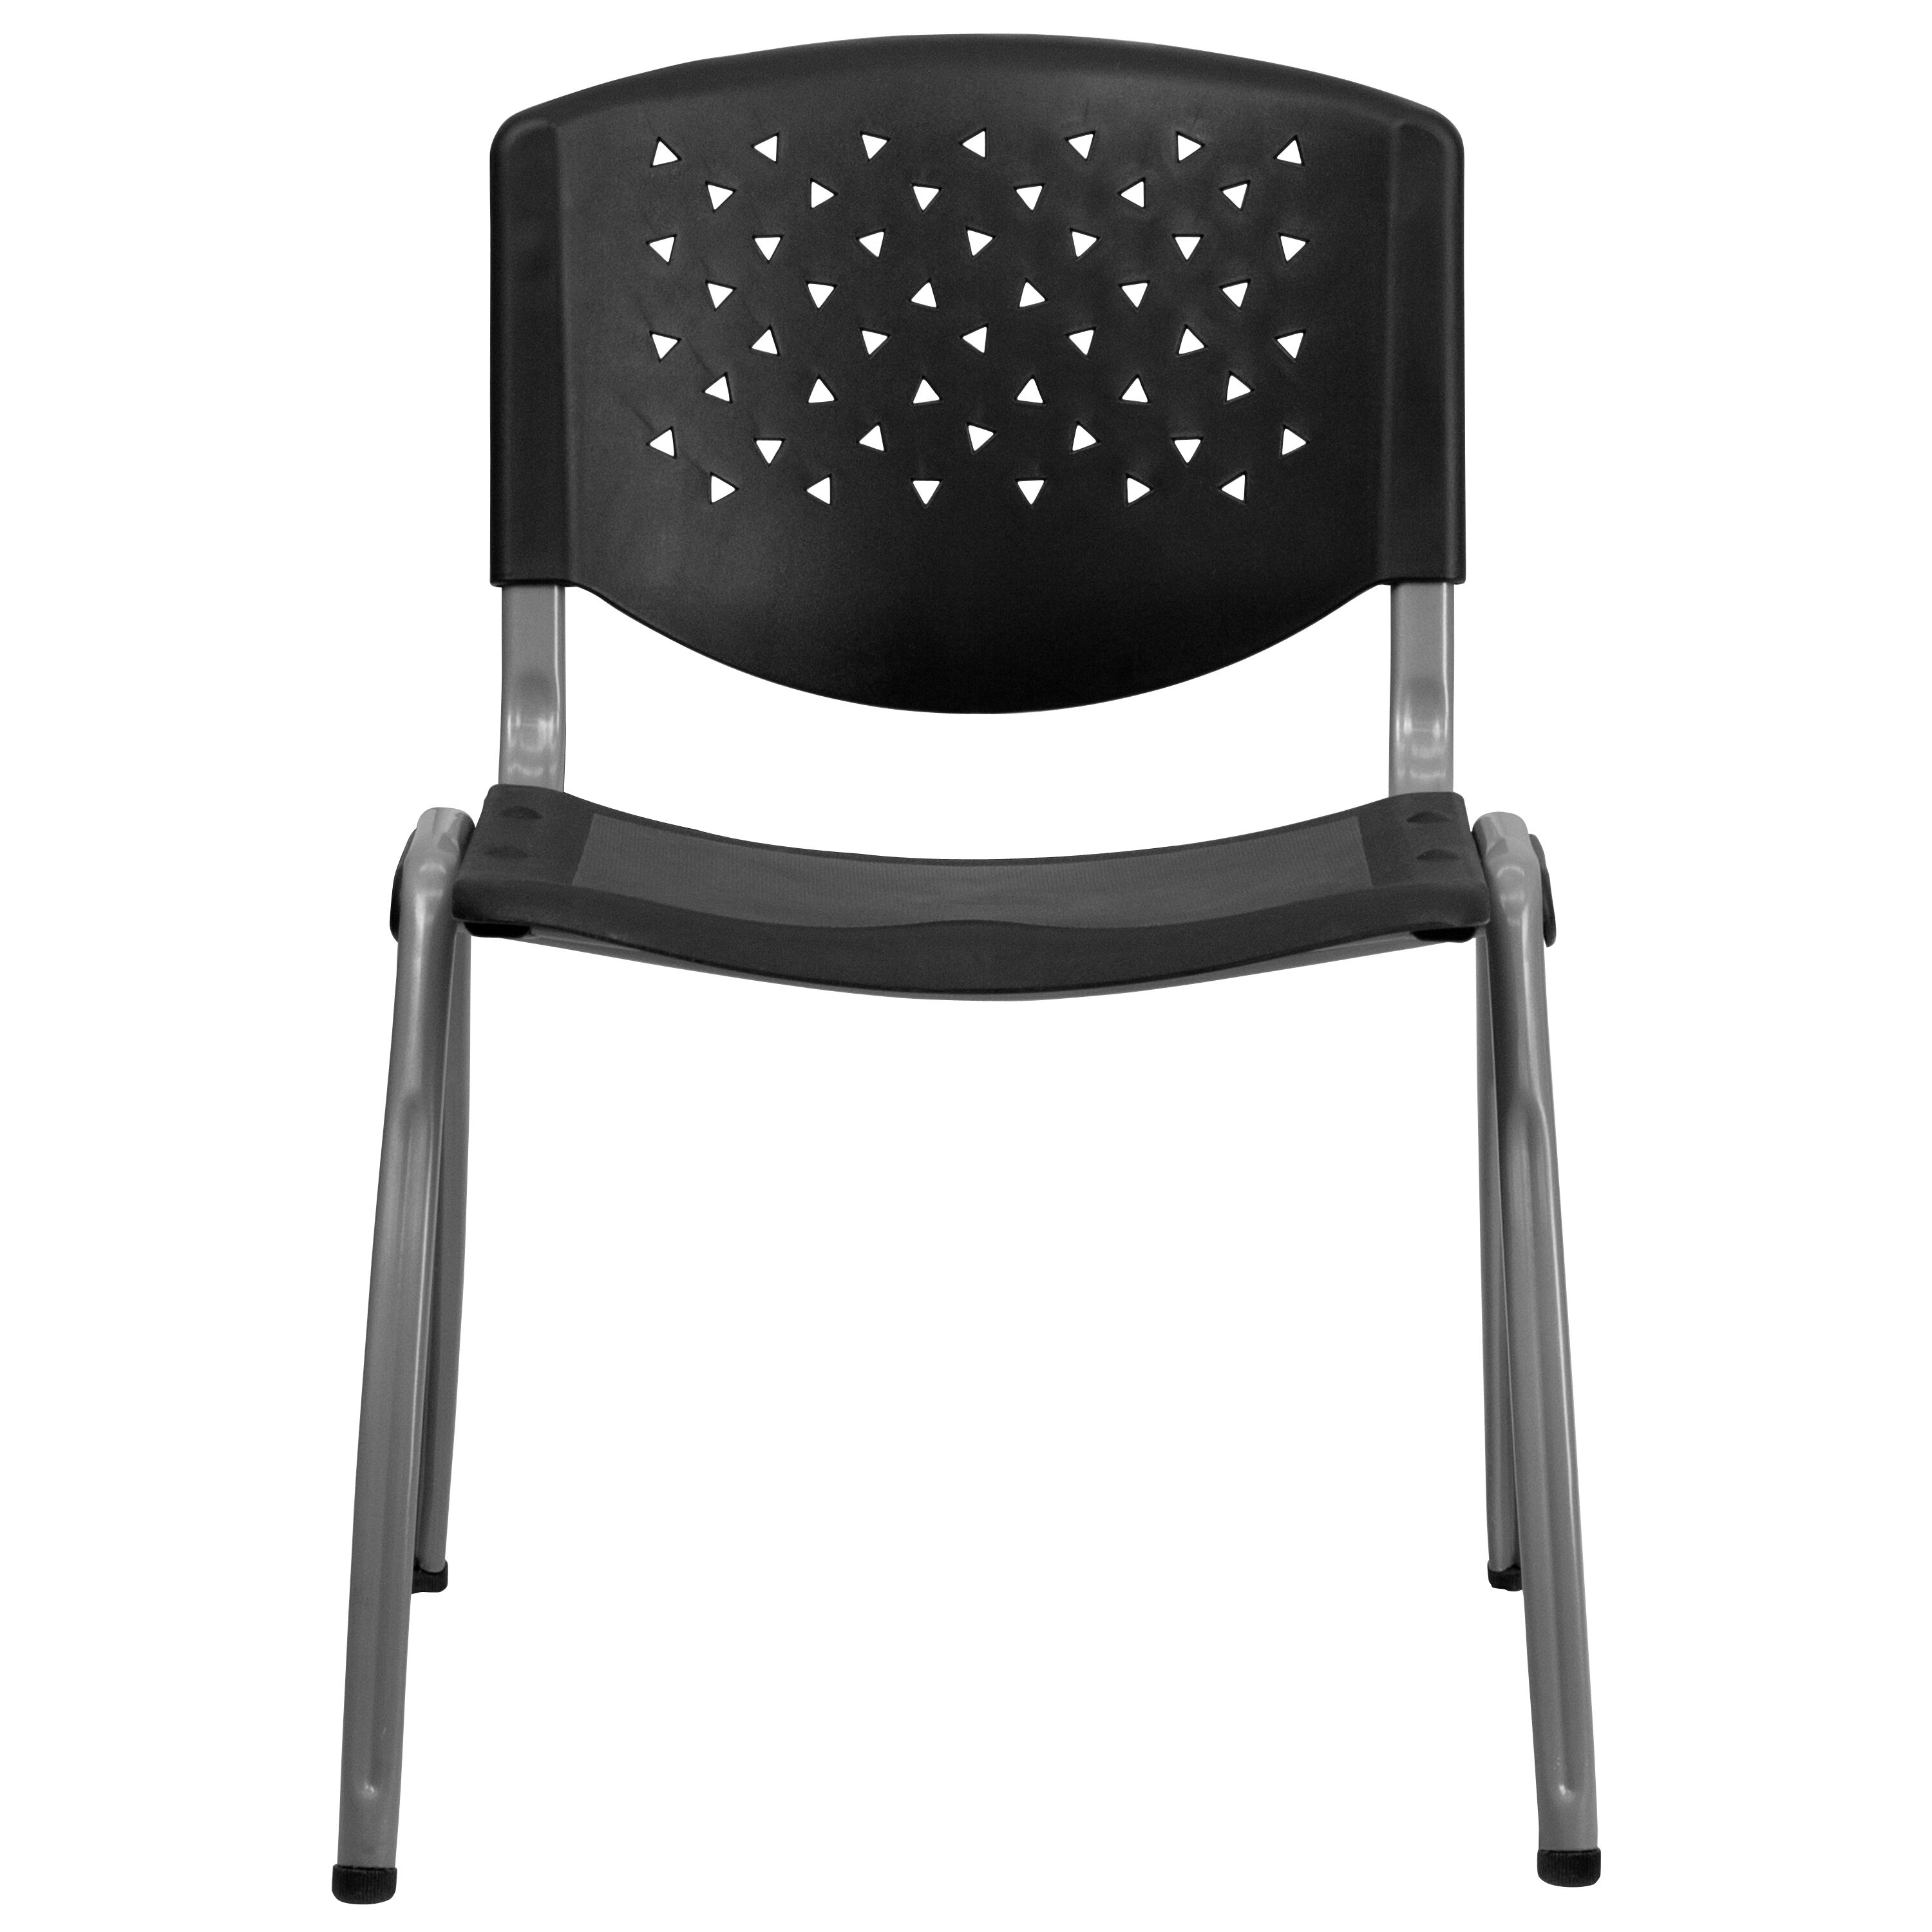 staples stacking chairs cheap lycra chair covers for sale flash furniture rut f01a bk gg bizchair